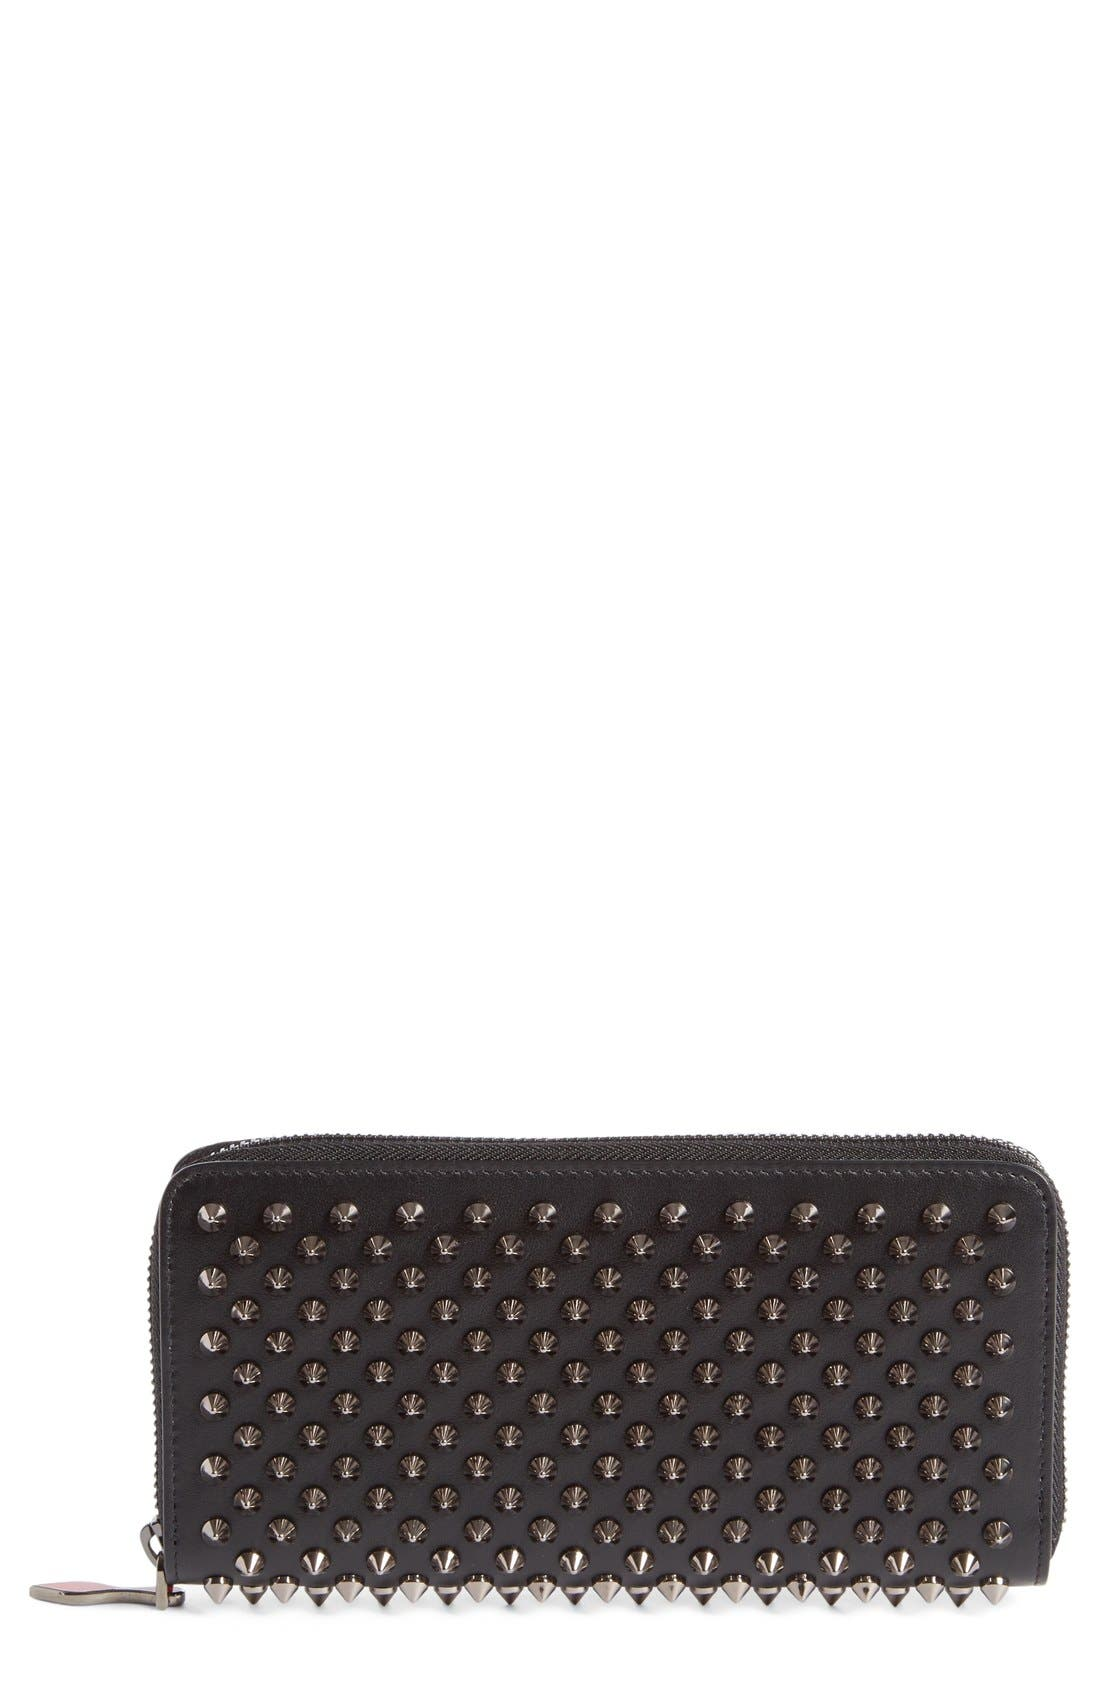 Panettone Spiked Calfskin Wallet,                         Main,                         color, Black/Multi Metal